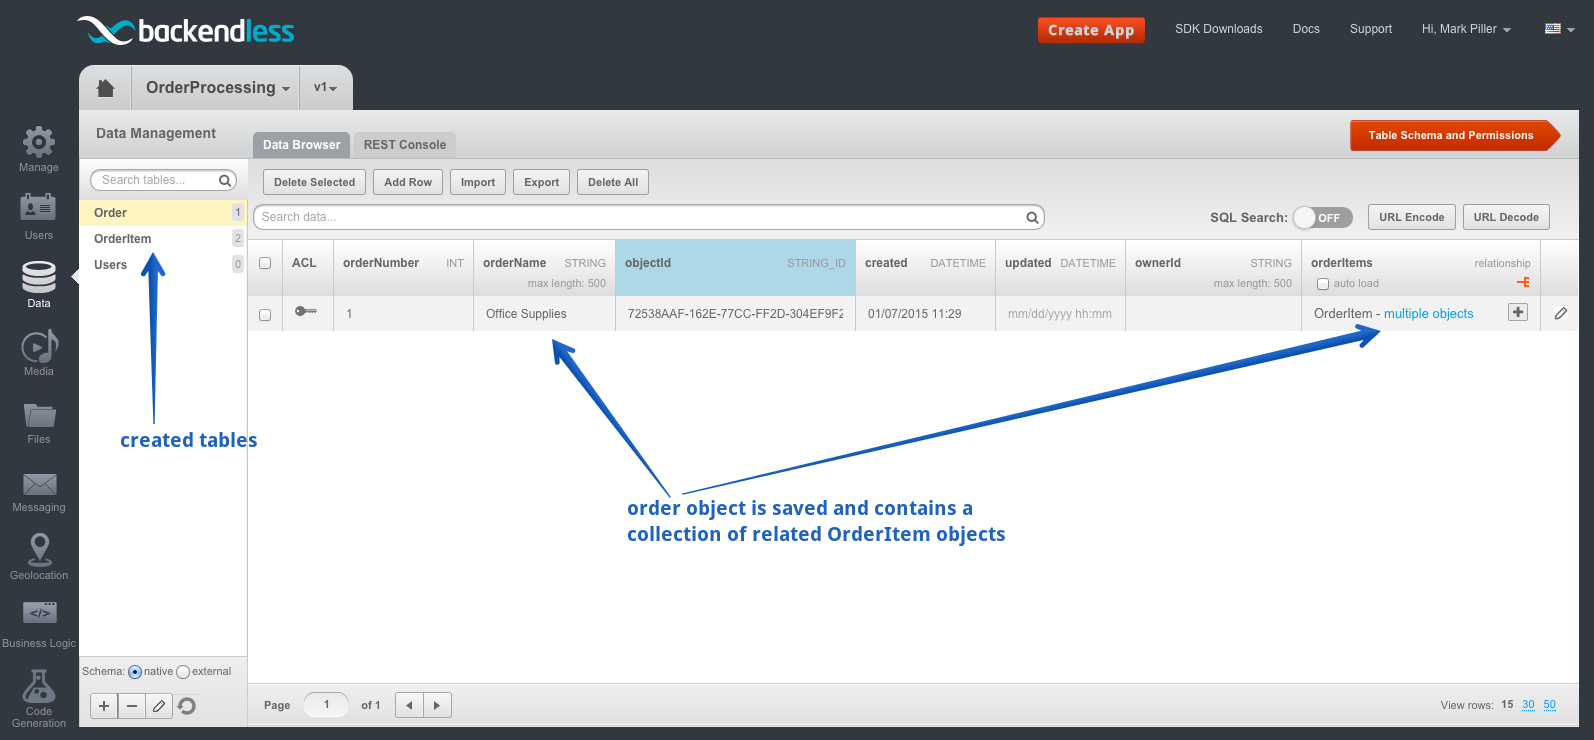 order table - Feature 1: Saving Objects with Relations and Dynamic Schema Creation